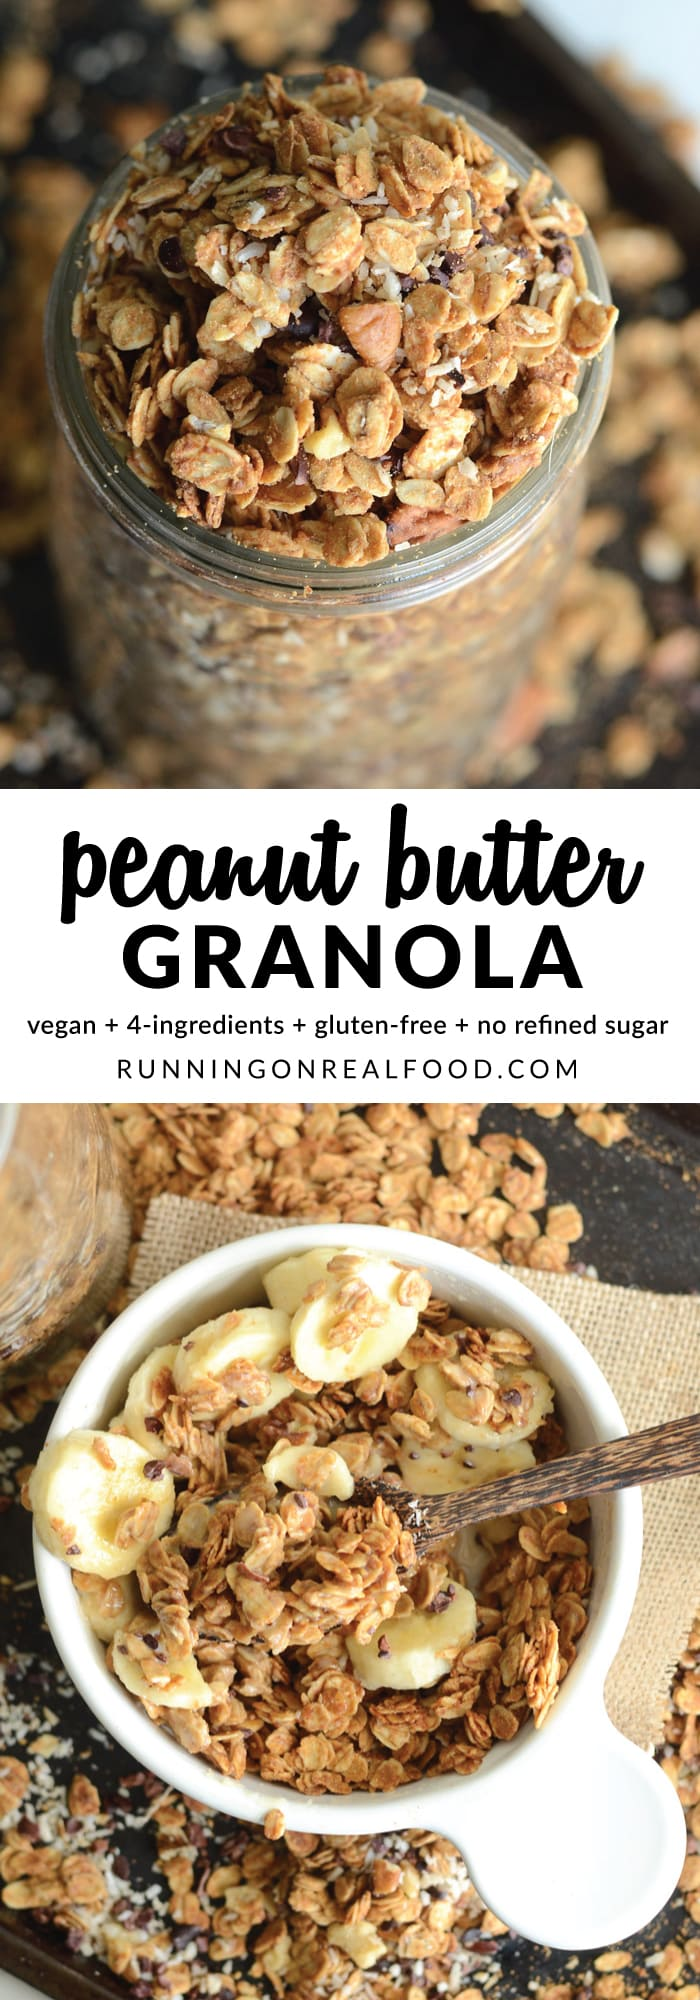 This easy to make, vegan, peanut butter granola requires just 4 wholesome, natural ingredients. It's amazing enjoyed as is or you can customize it with add-ins like chocolate chips!